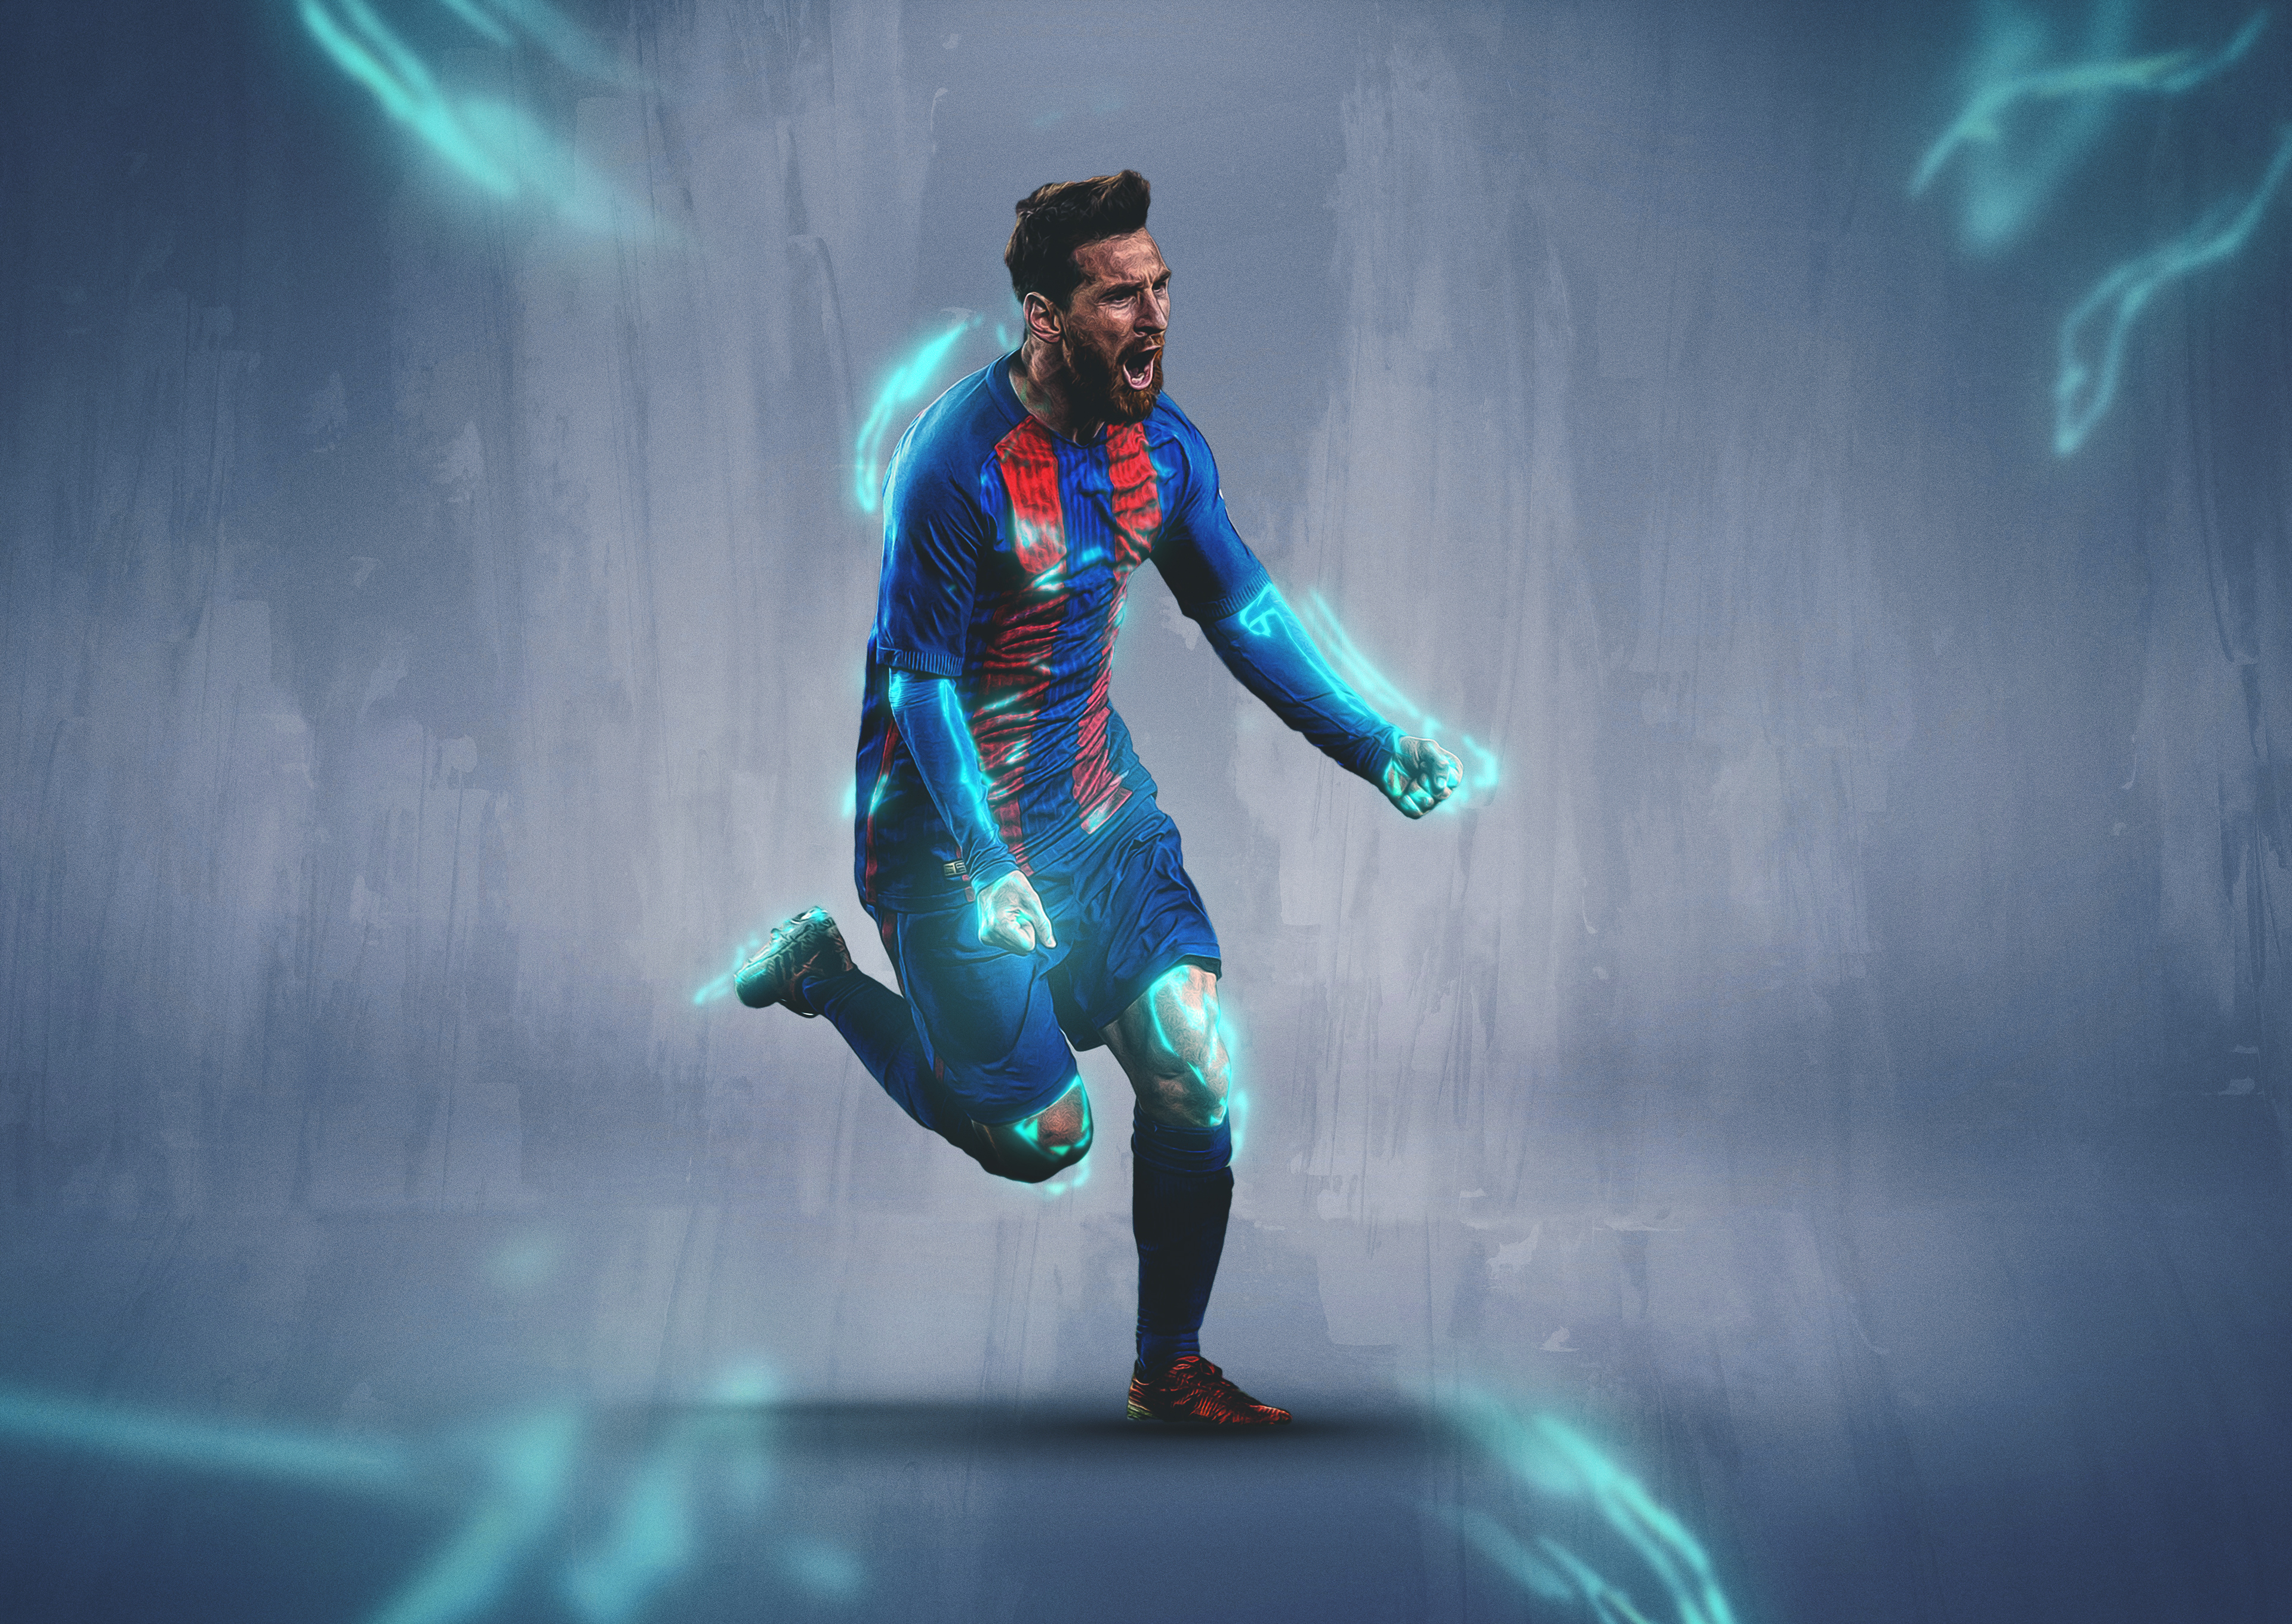 Lionel Messi 4k Ultra Hd Wallpaper Background Image 3840x2721 Id 1012919 Wallpaper Abyss